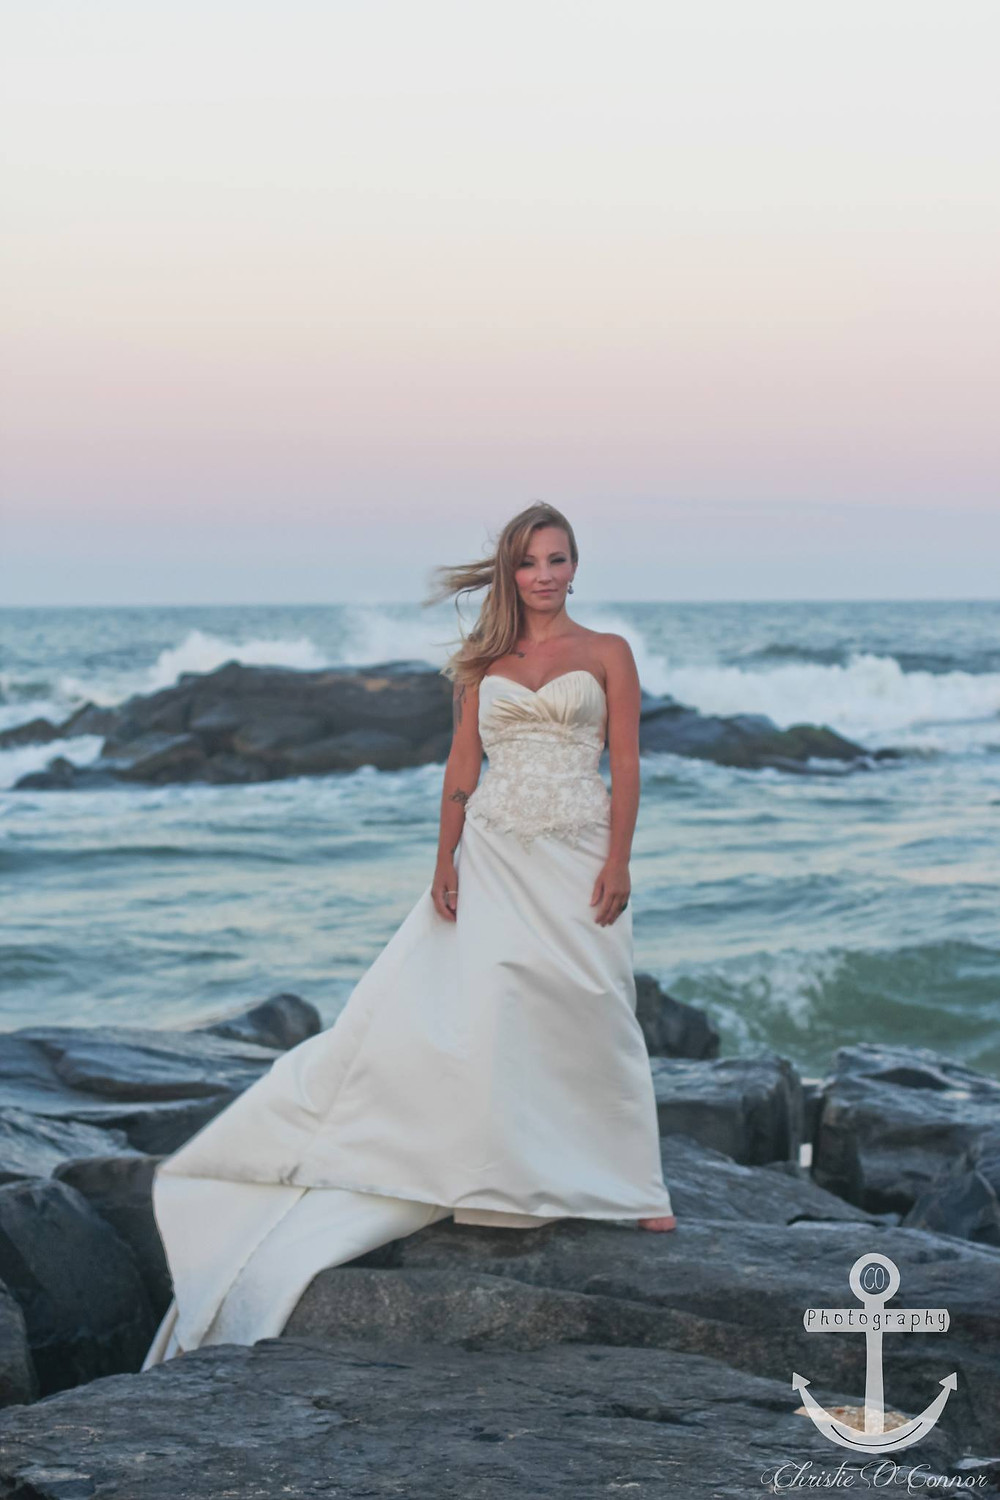 A picture Christie took of a bride